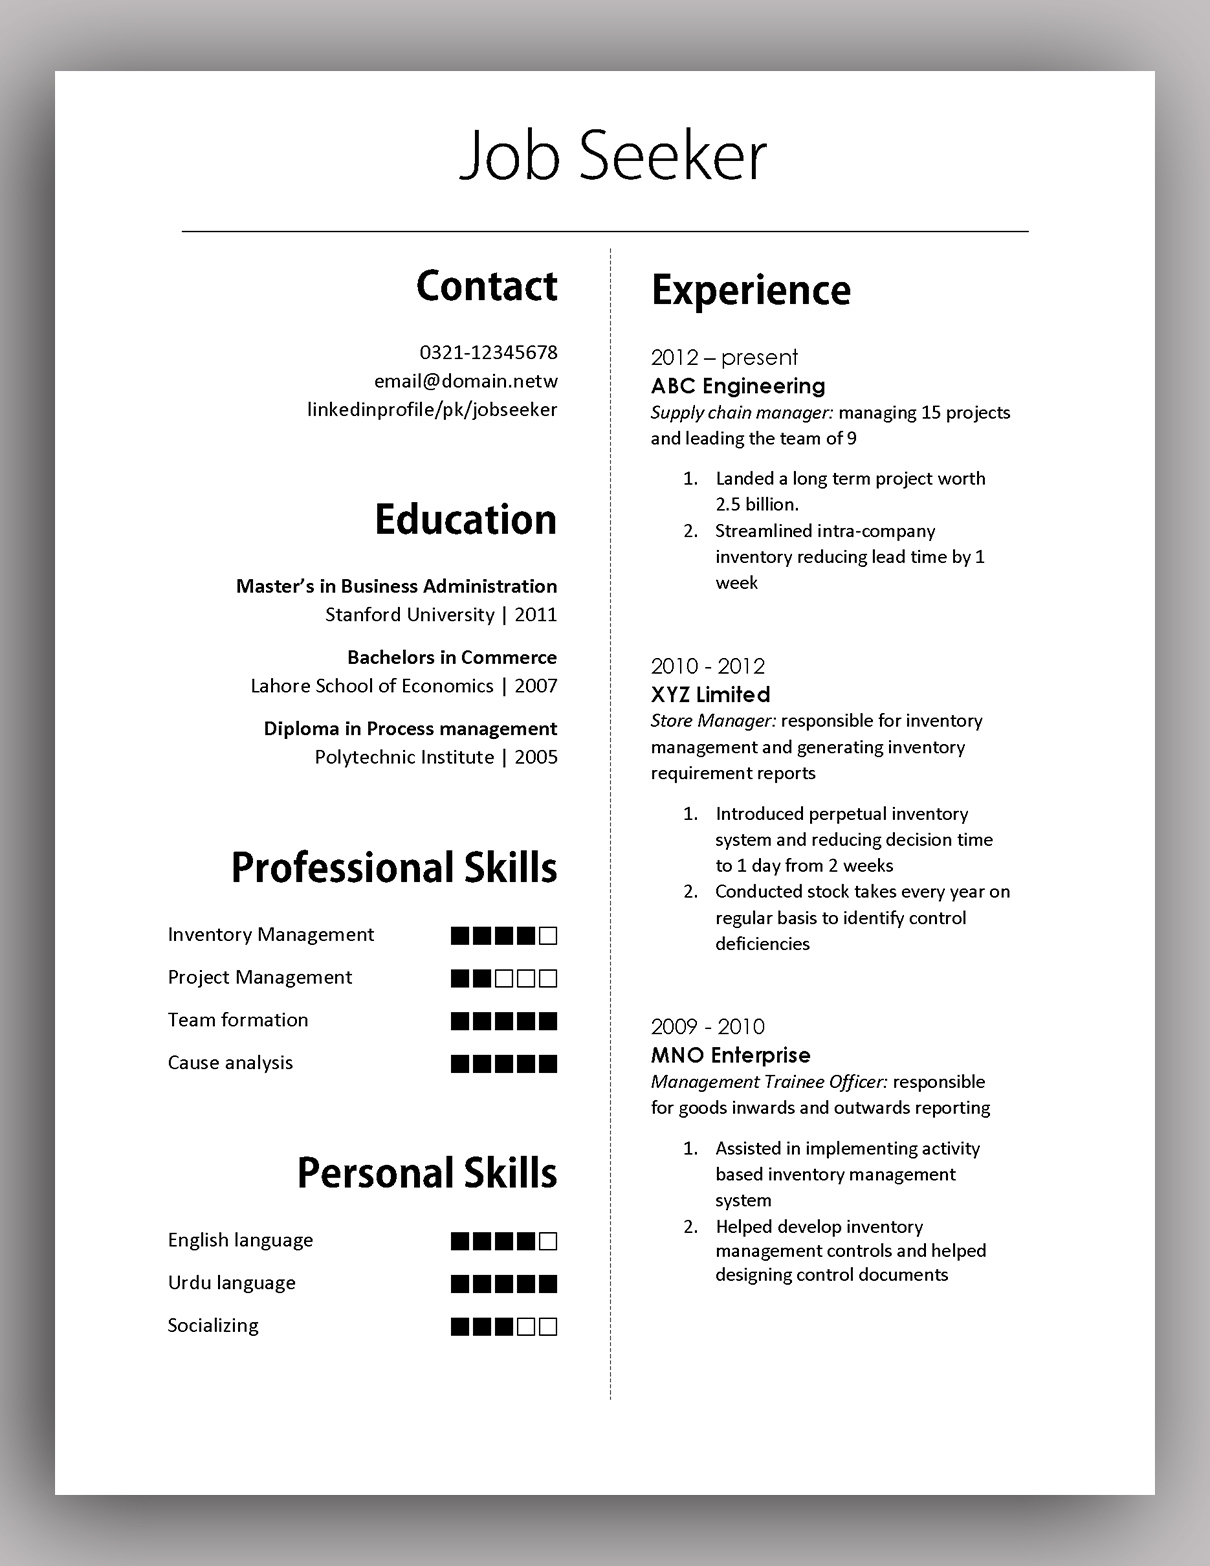 Free and premium plans sales crm software. Simple Yet Elegant Cv Template To Get The Job Done Free Download Pakaccountants Com